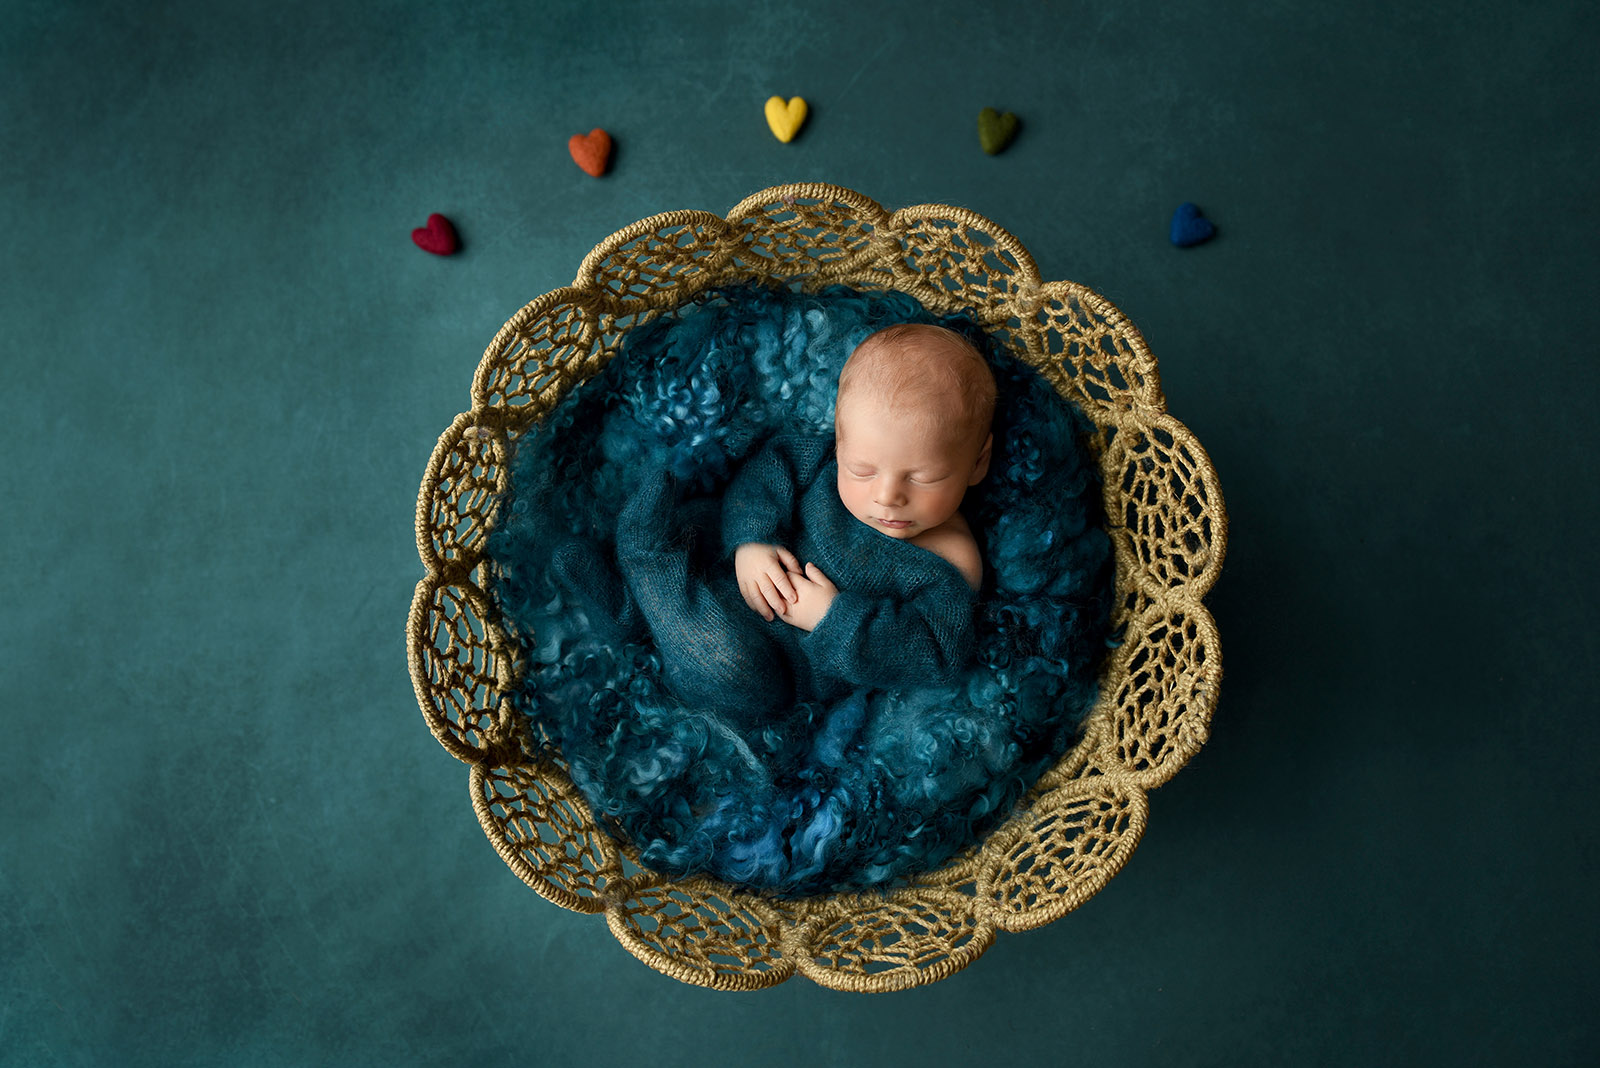 Rainbow baby photos on blue background with hearts